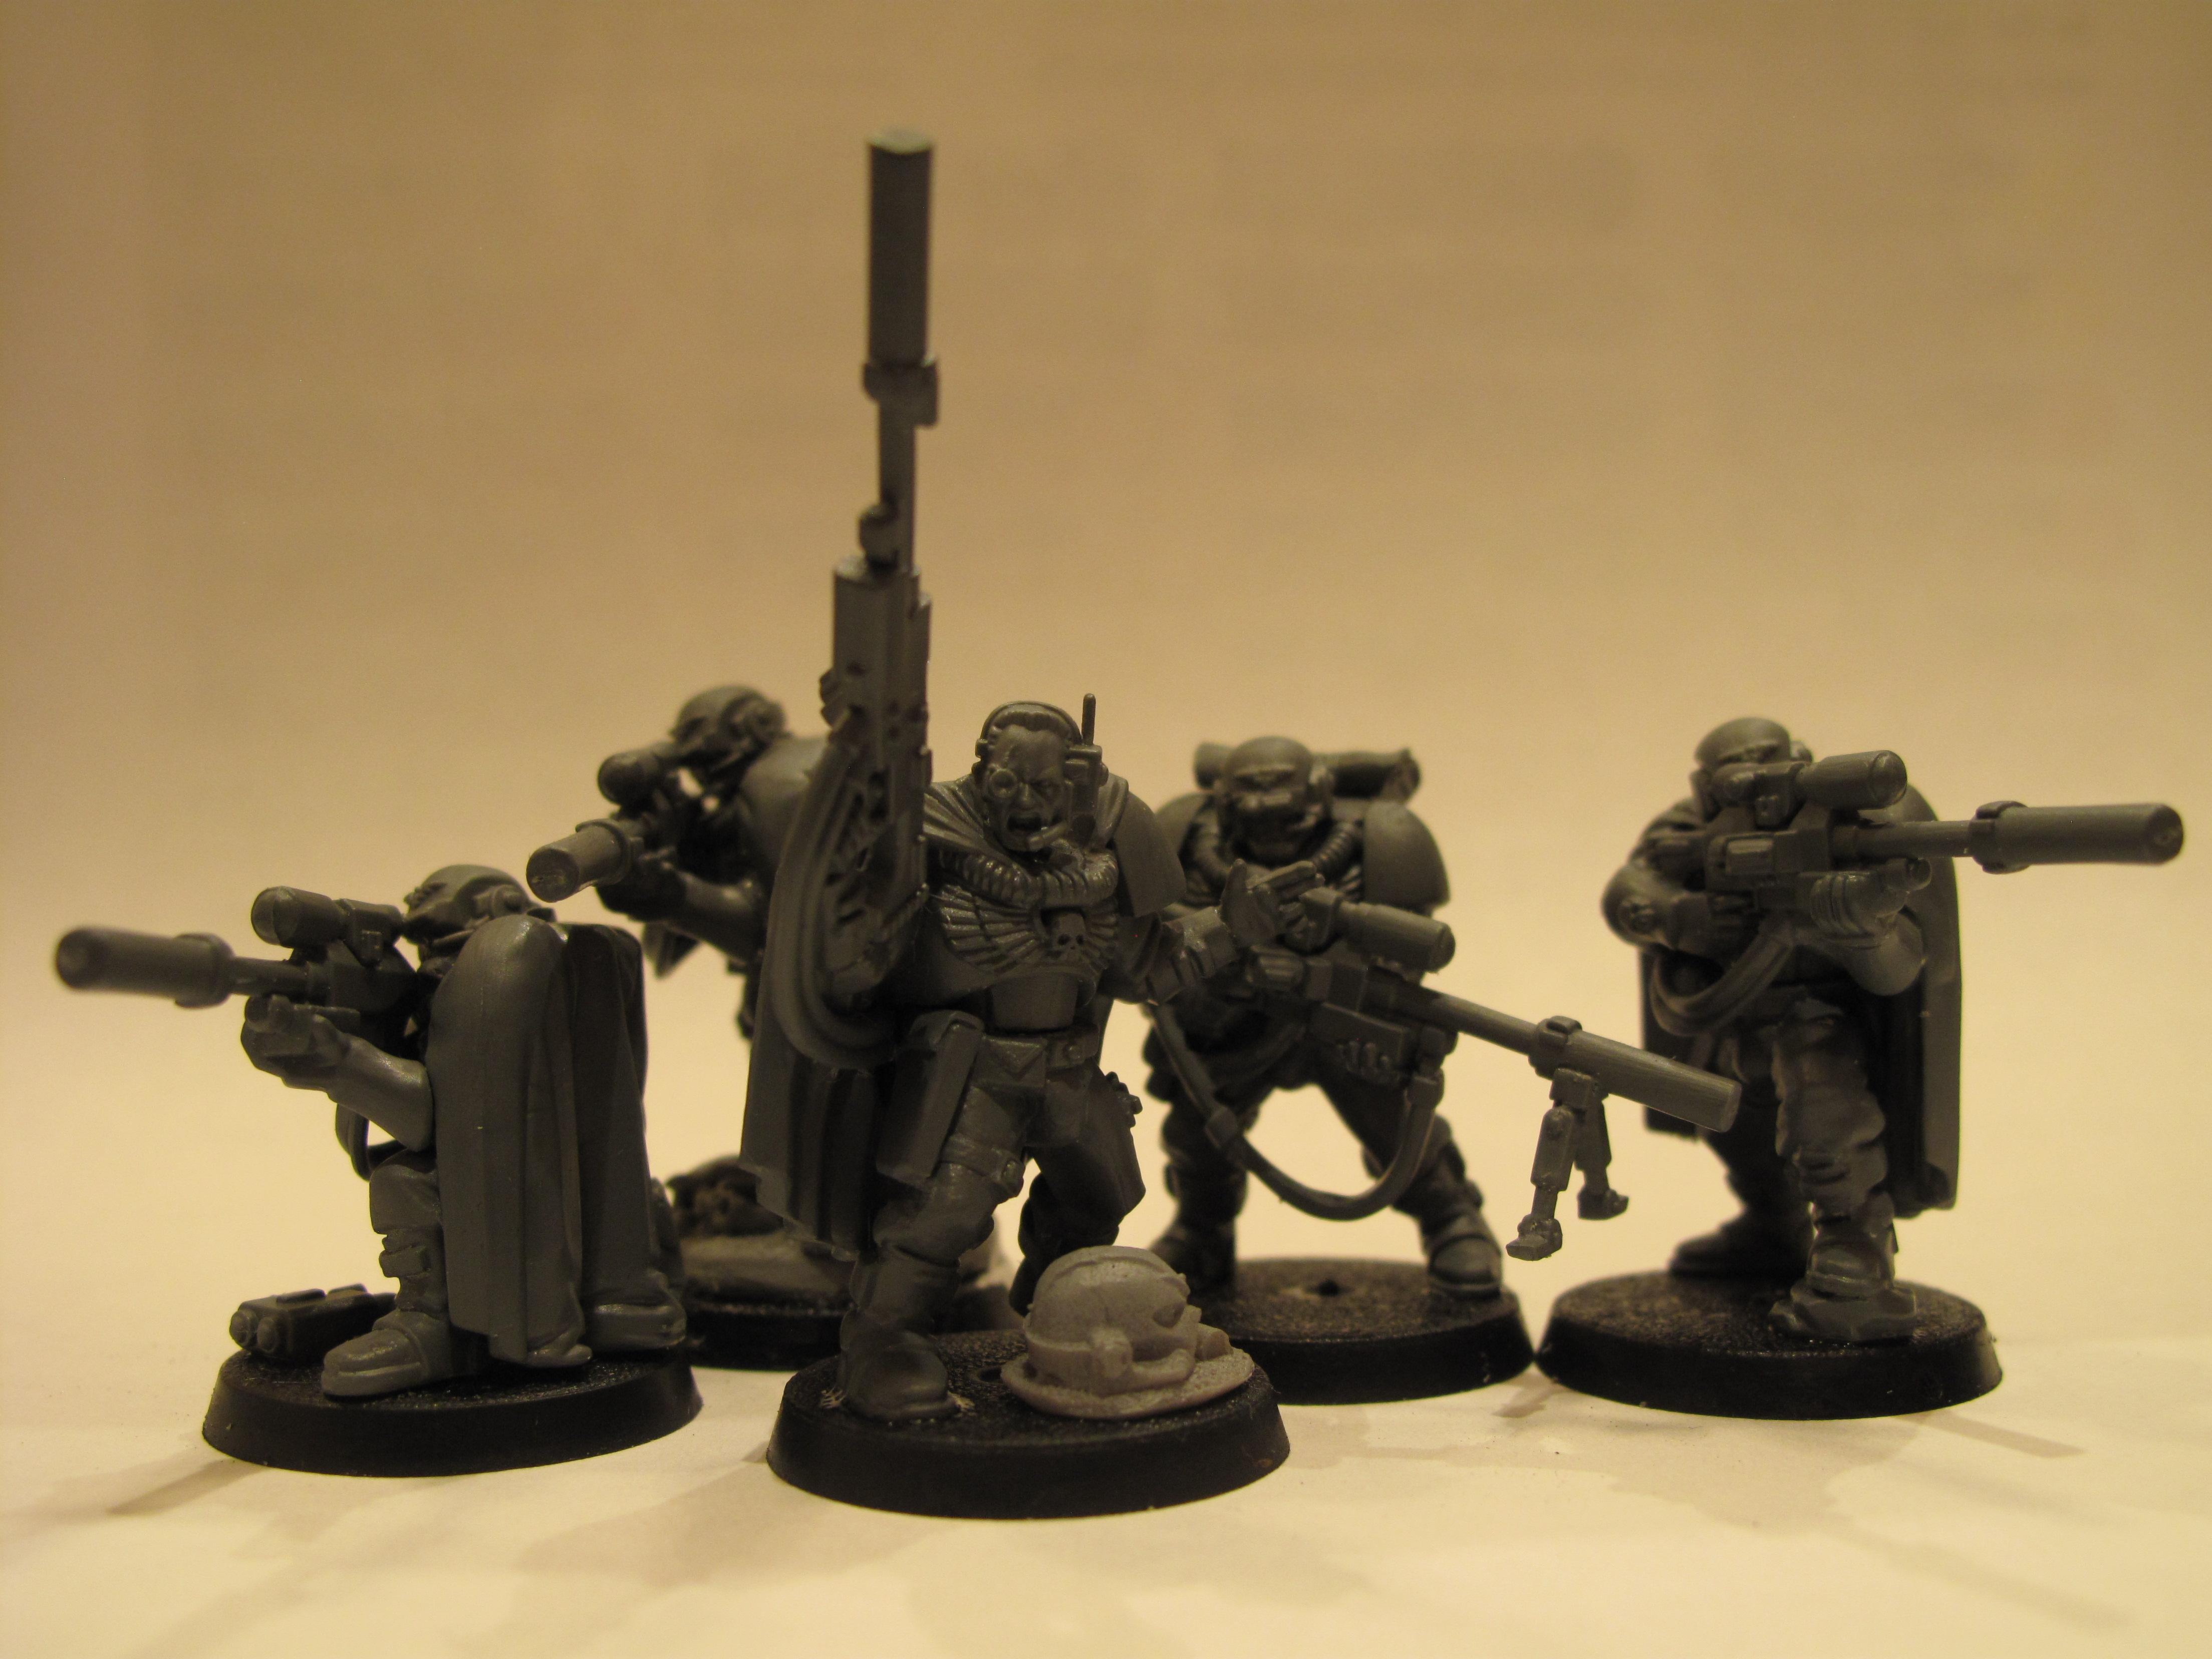 Scouts, Space Marines, Warhammer 40,000, Work In Progress